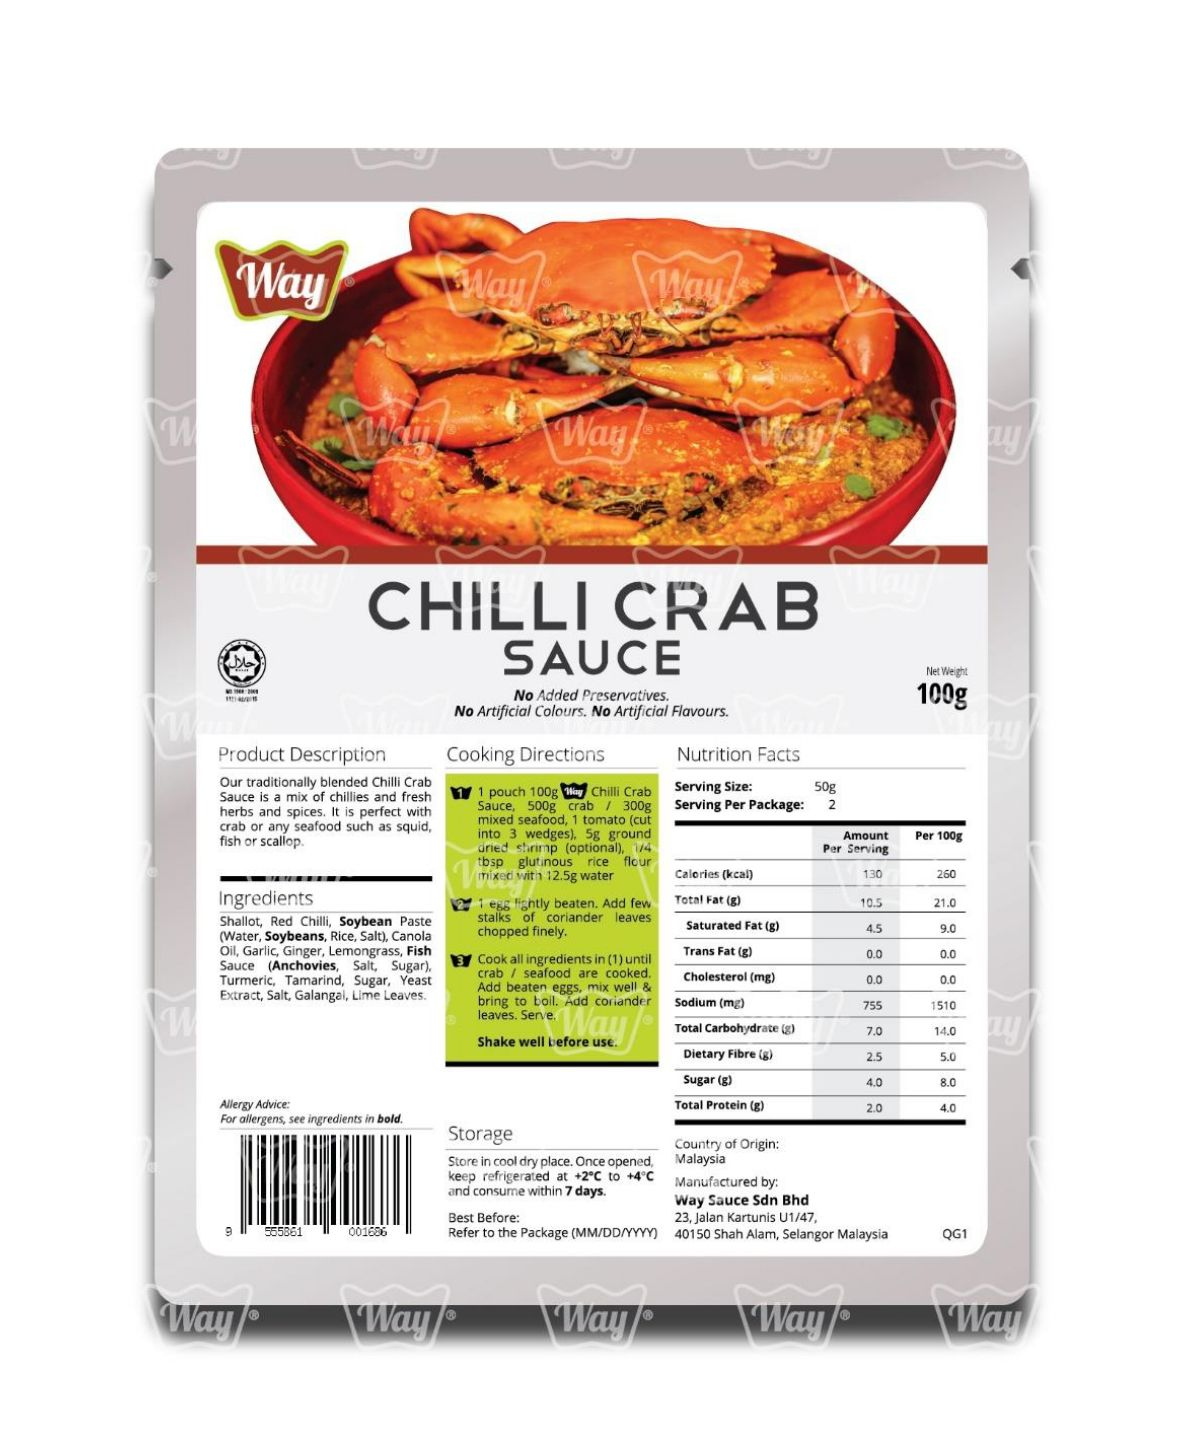 Chili Crab Spice Sauce Bottle Way Sauce Brand Best Selling Food Seasoning OEM Manufacturer Ship Export Refined Premium Paste